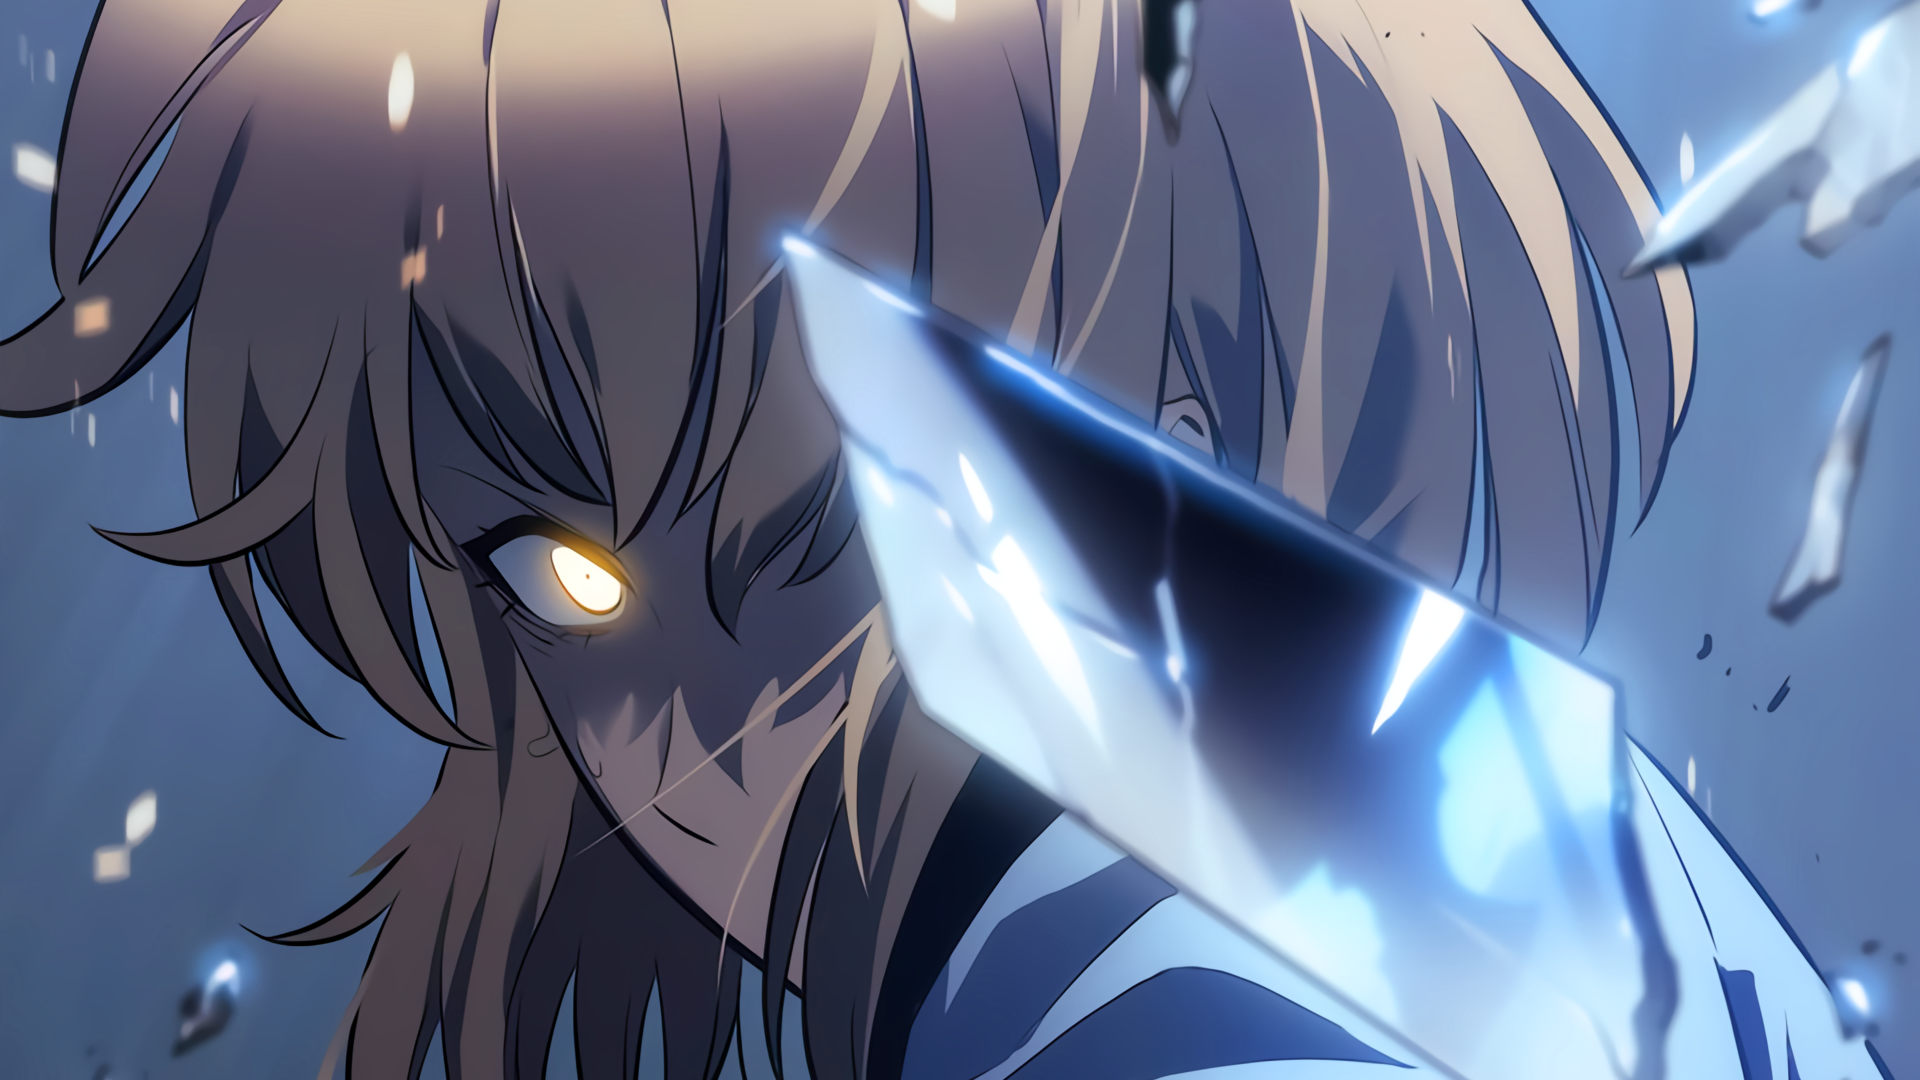 3840x2160 Solo Leveling Wallpaper Background Image View Download Comment And Rate Wallpaper In 2021 Background Images Cool Anime Wallpapers Wallpaper Backgrounds